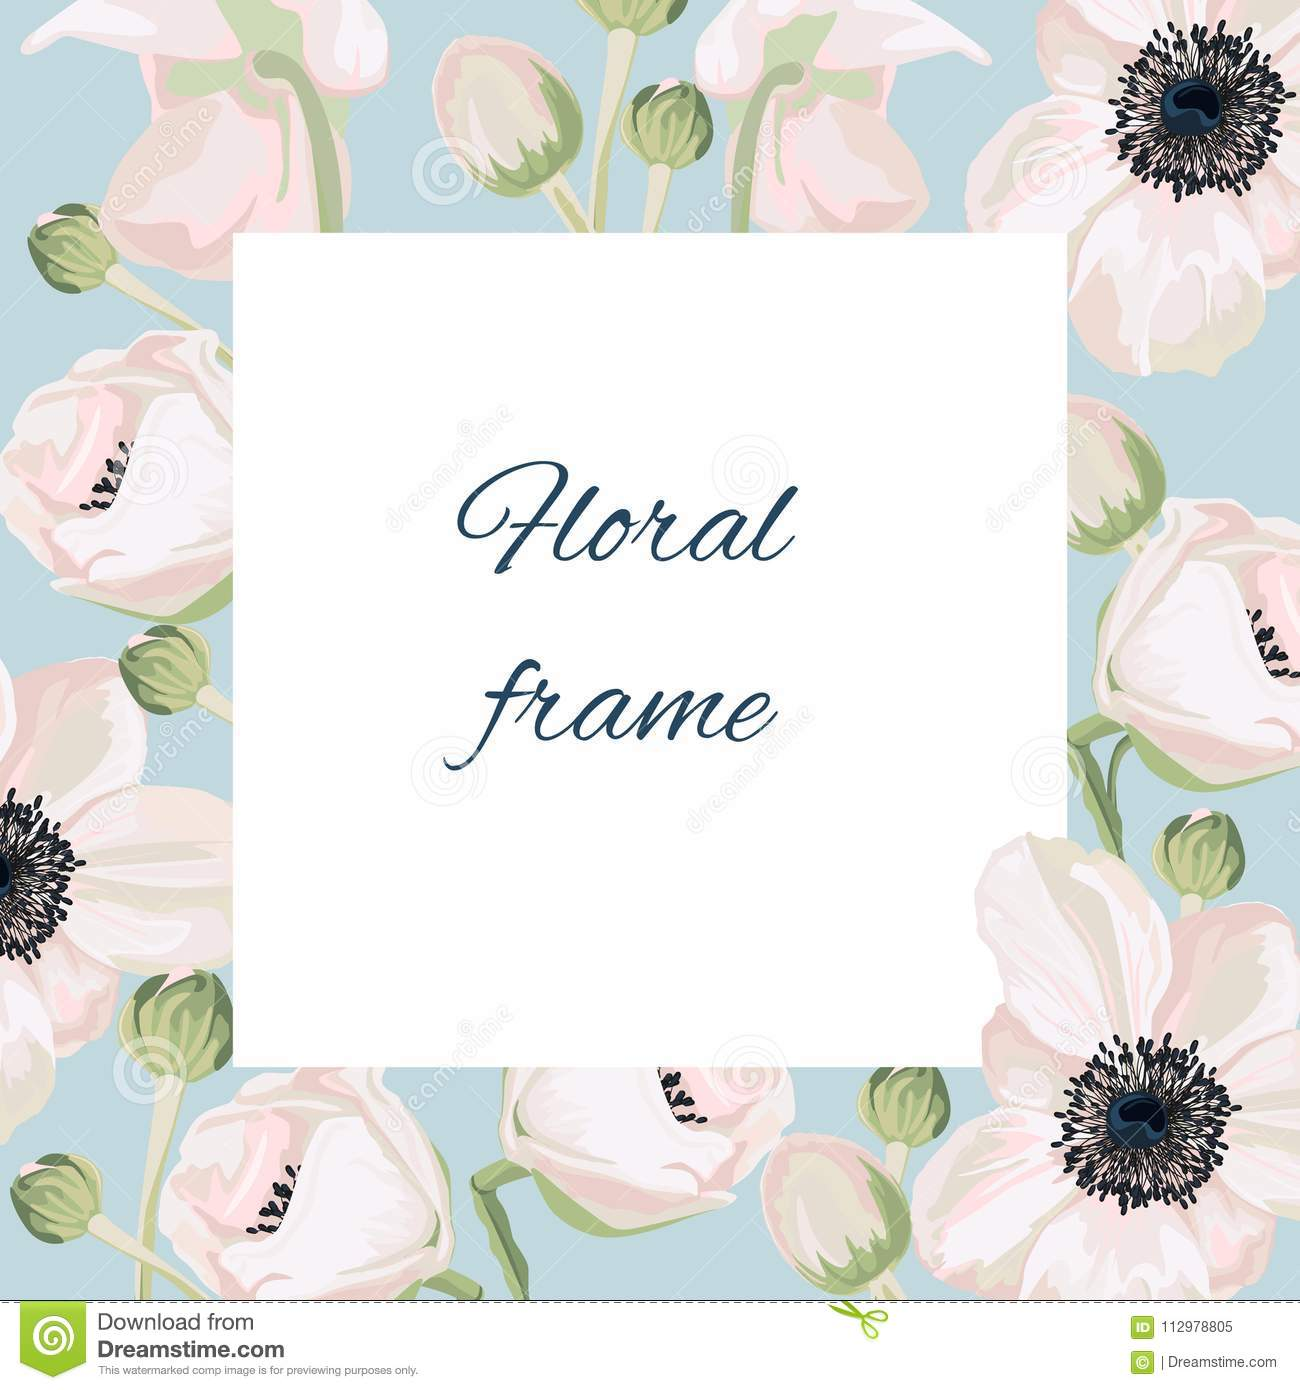 Vintage vector frame with summer flowers in pastel colors.